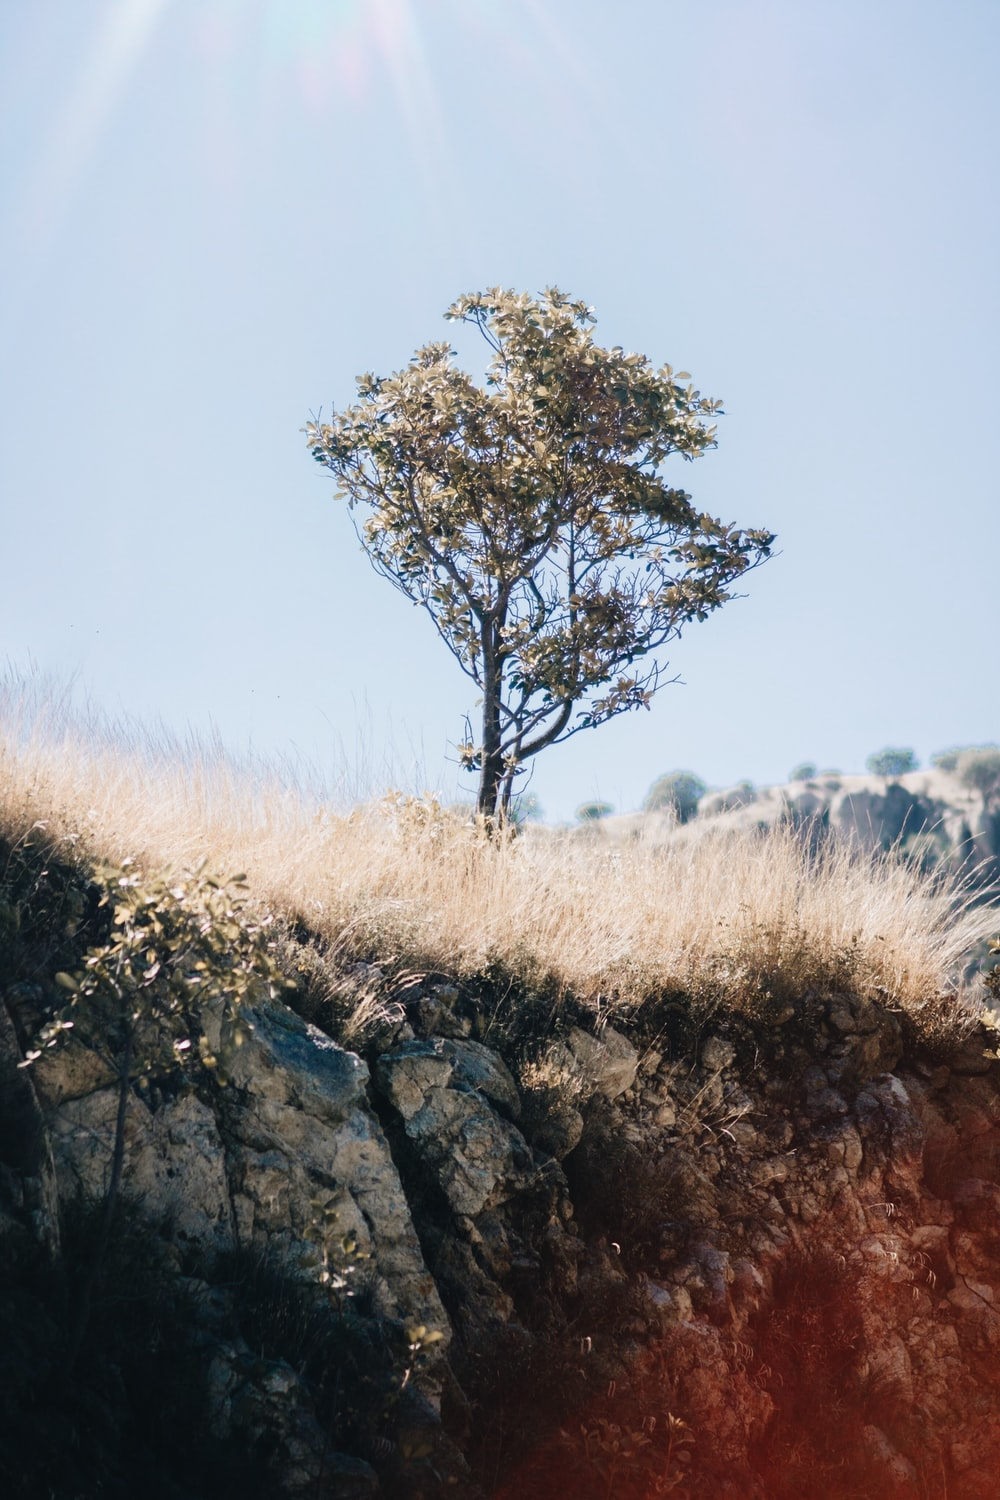 green-leafed tree near the edge of a mountain during day